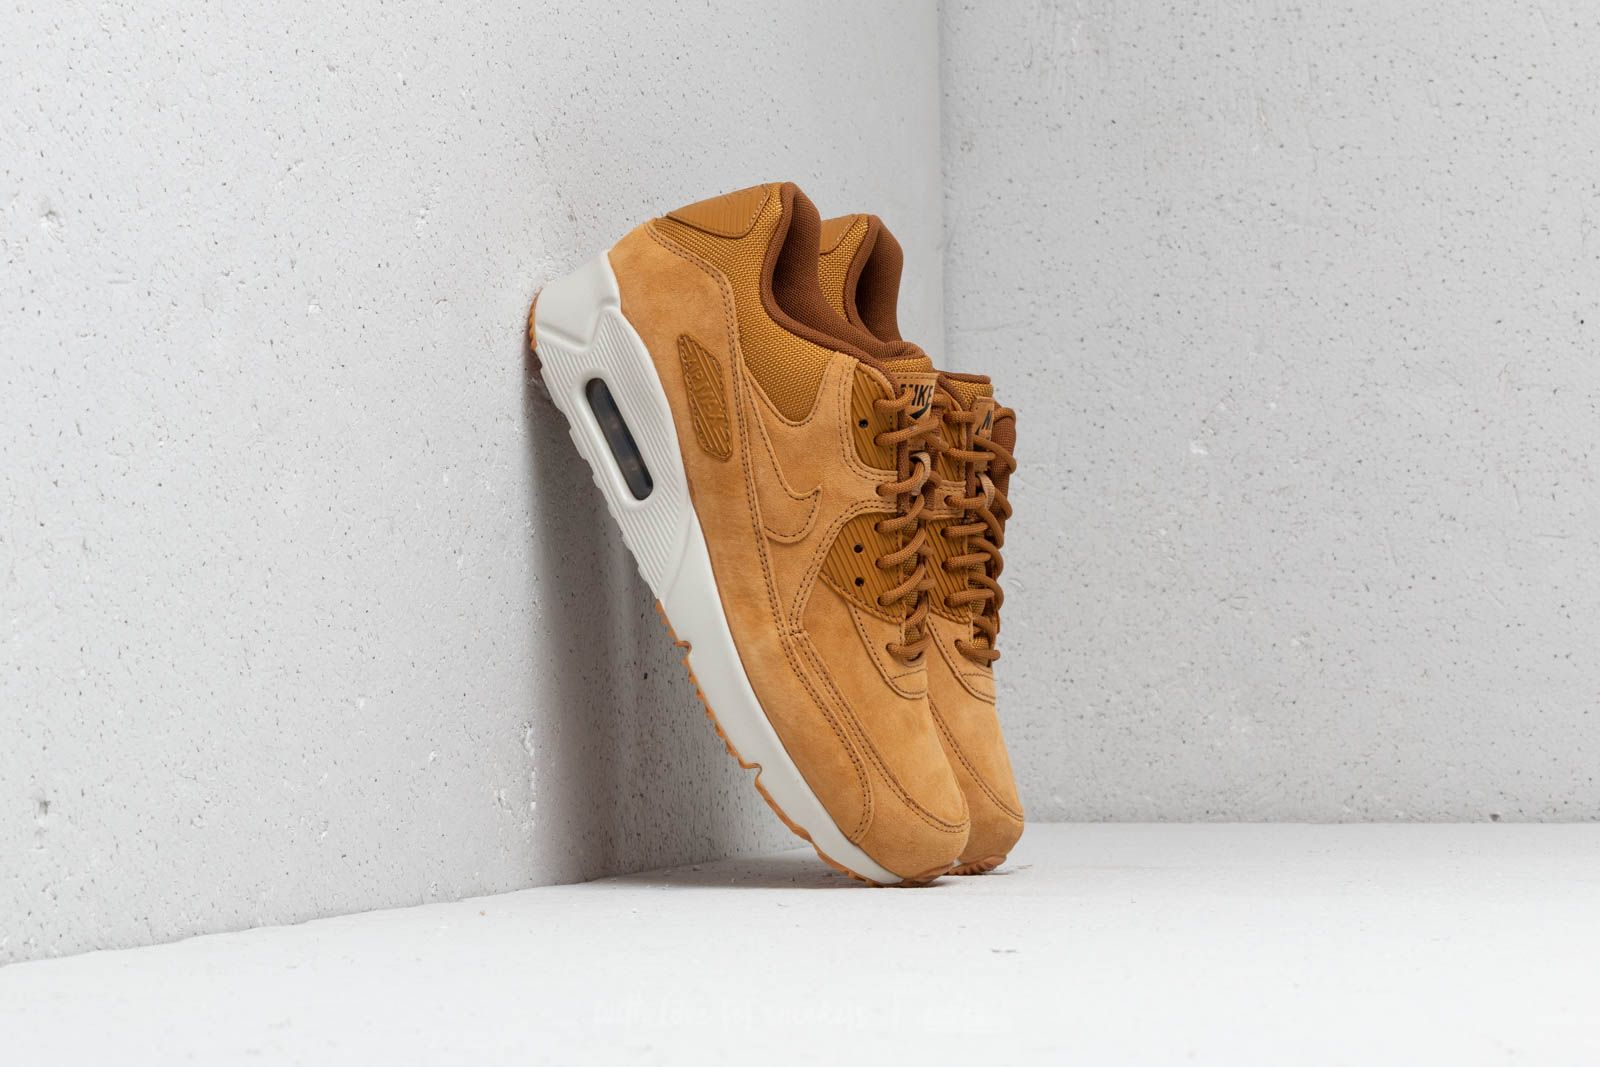 low priced da647 8a01a Nike Air Max 90 Ultra 2.0 Leather